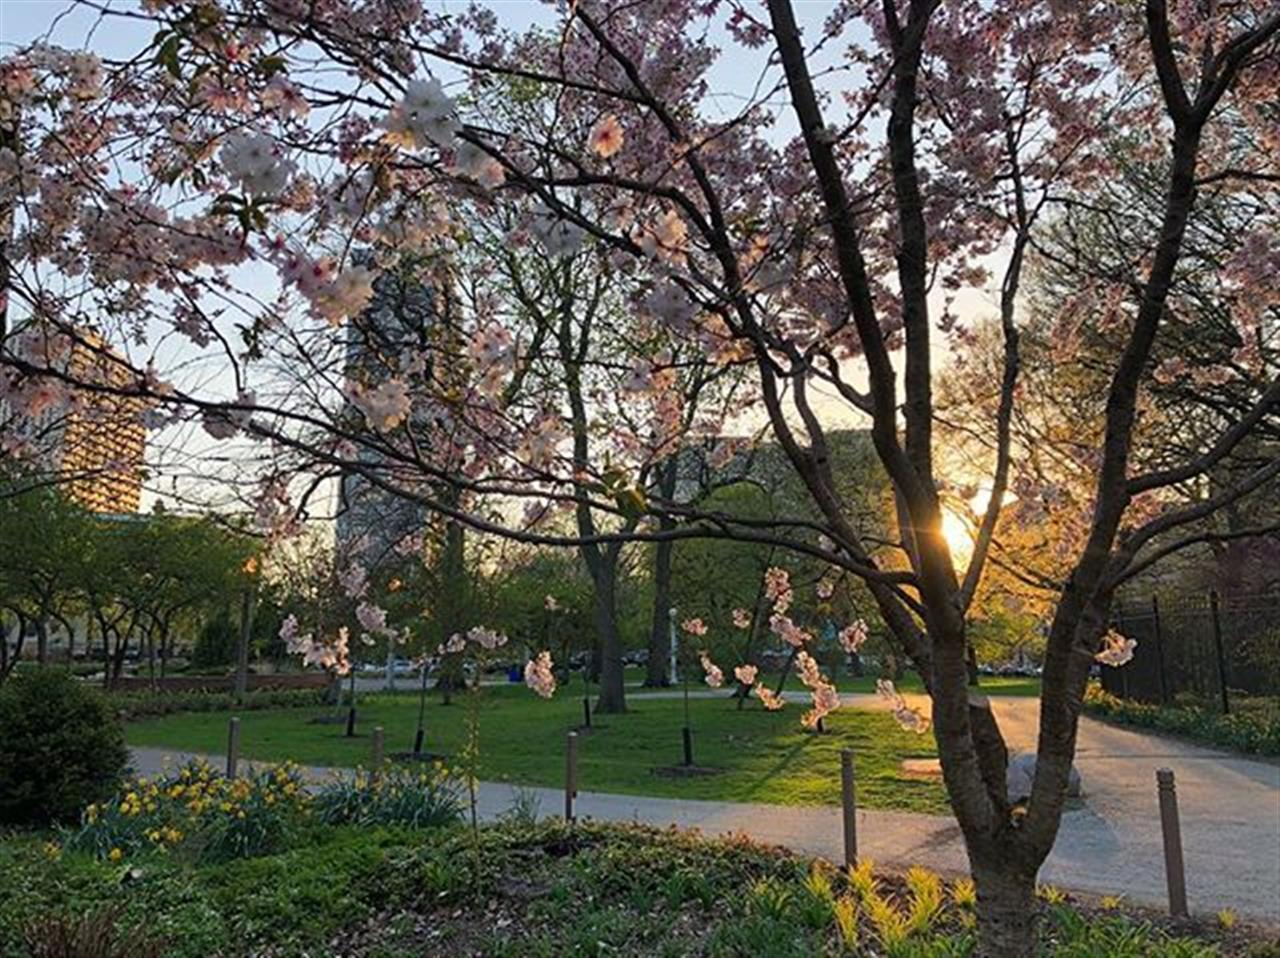 Simply stunning .. .. .. .. .. #chi #chicago #lincolnpark #bairdwarner #sunset #spring #flowers #blooming #walk #evening #eveningwalk #leadingrelocal #lincolnparkzoo #cherryblossom #illinois #commute #cafebrauer